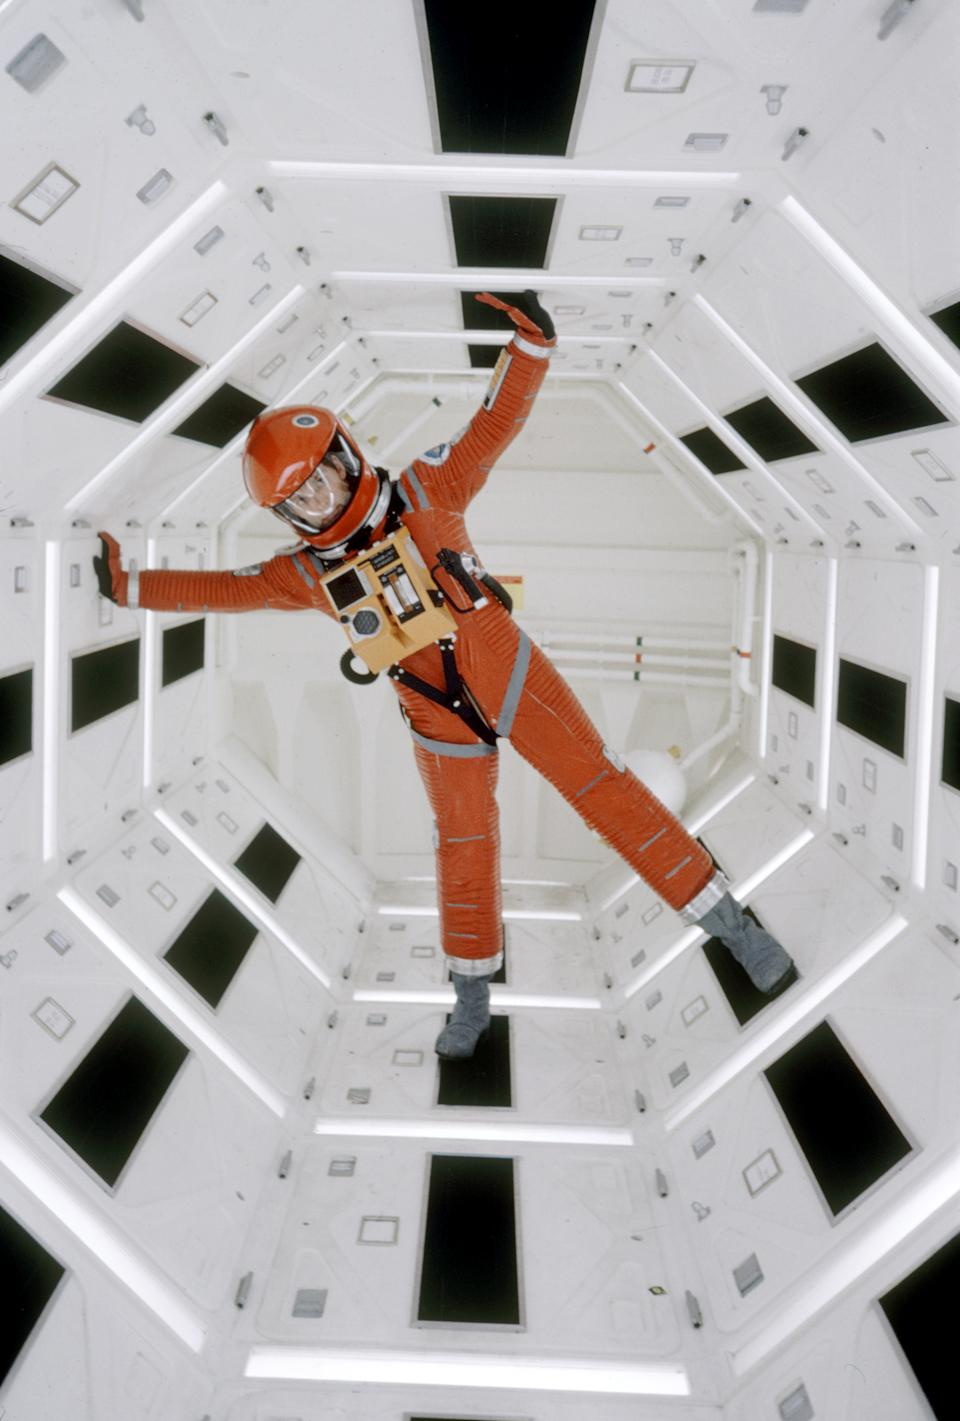 Actor Keir Dullea in space suit in scene from motion picture 2001: A Space Odyssey.  (Photo by Dmitri Kessel/The LIFE Picture Collection via Getty Images)